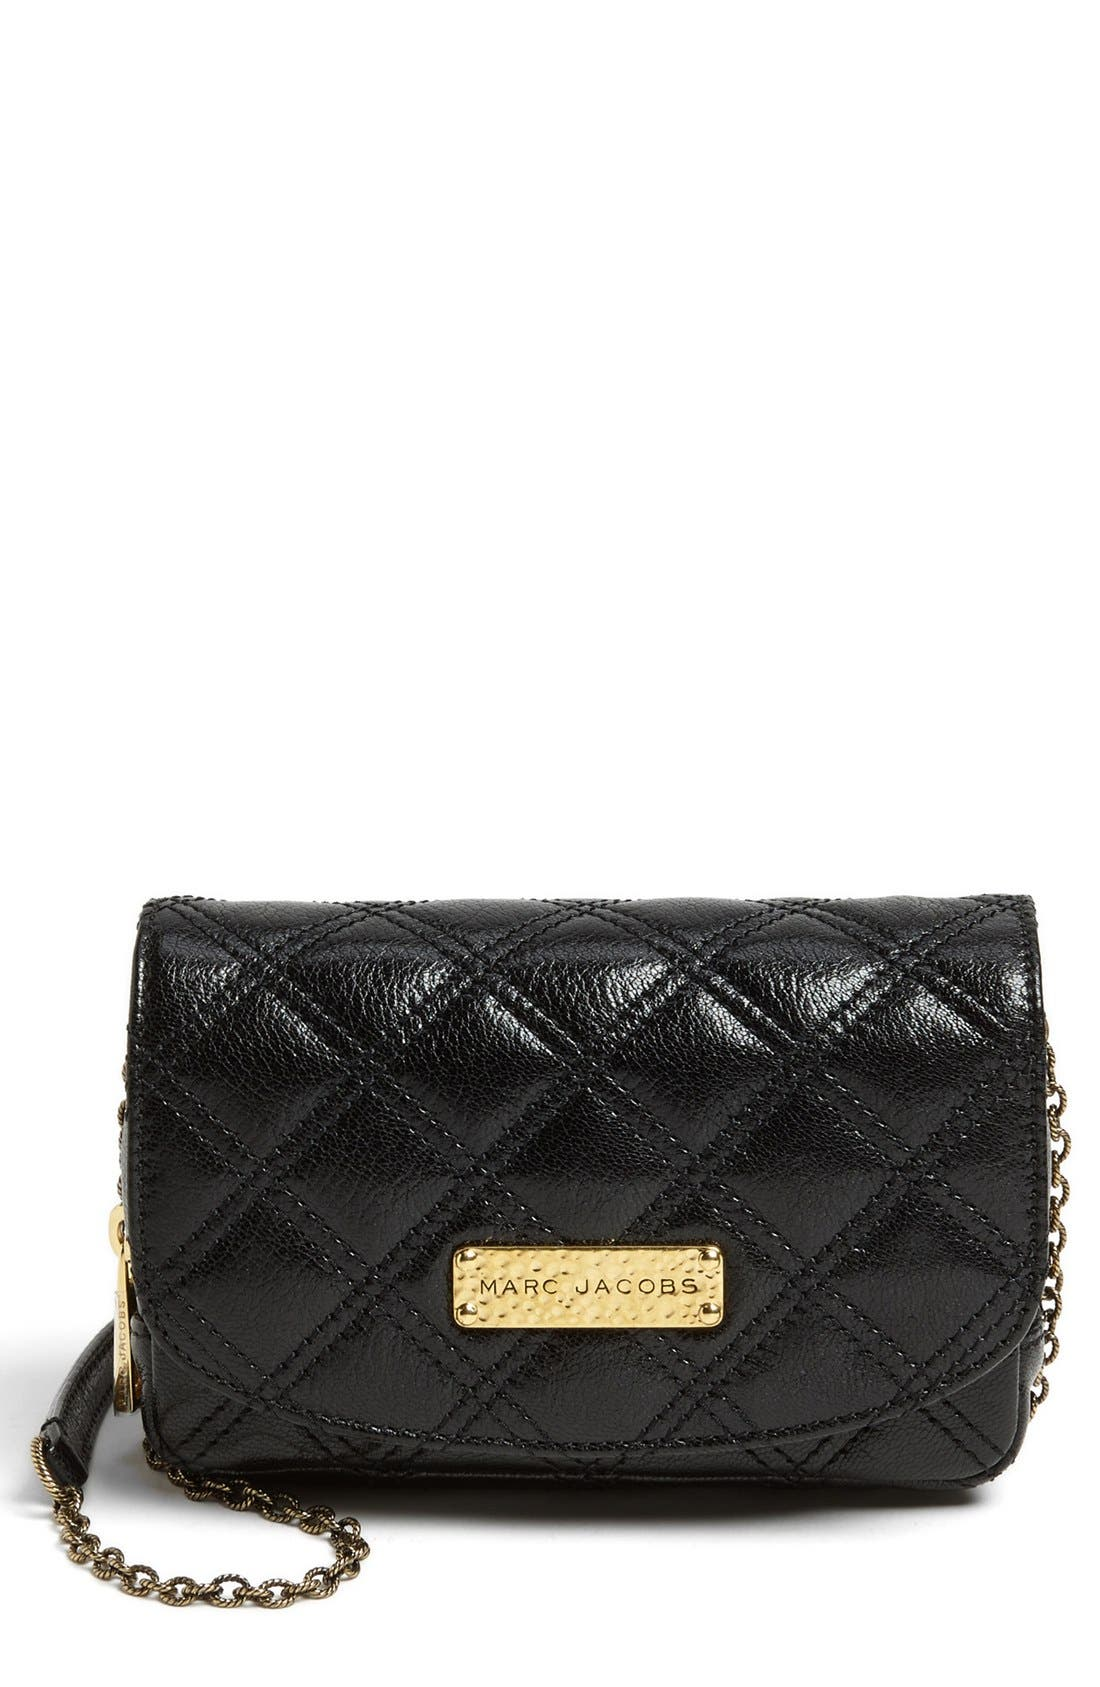 Alternate Image 1 Selected - MARC JACOBS 'Baroque - Bijoux' Leather Crossbody Bag